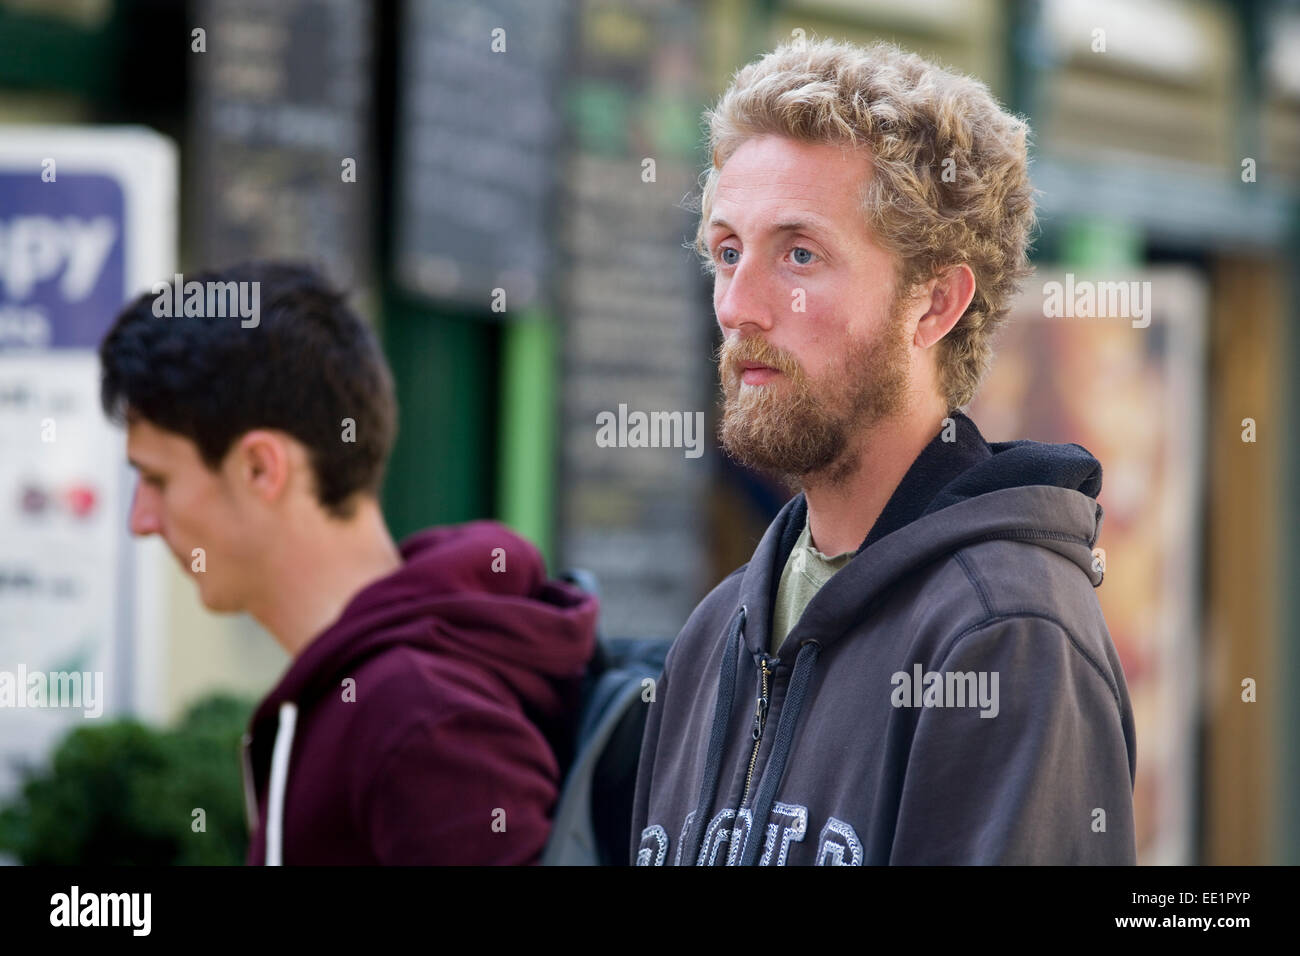 A young bearded male at St. Nicholas Market, Bristol. - Stock Image